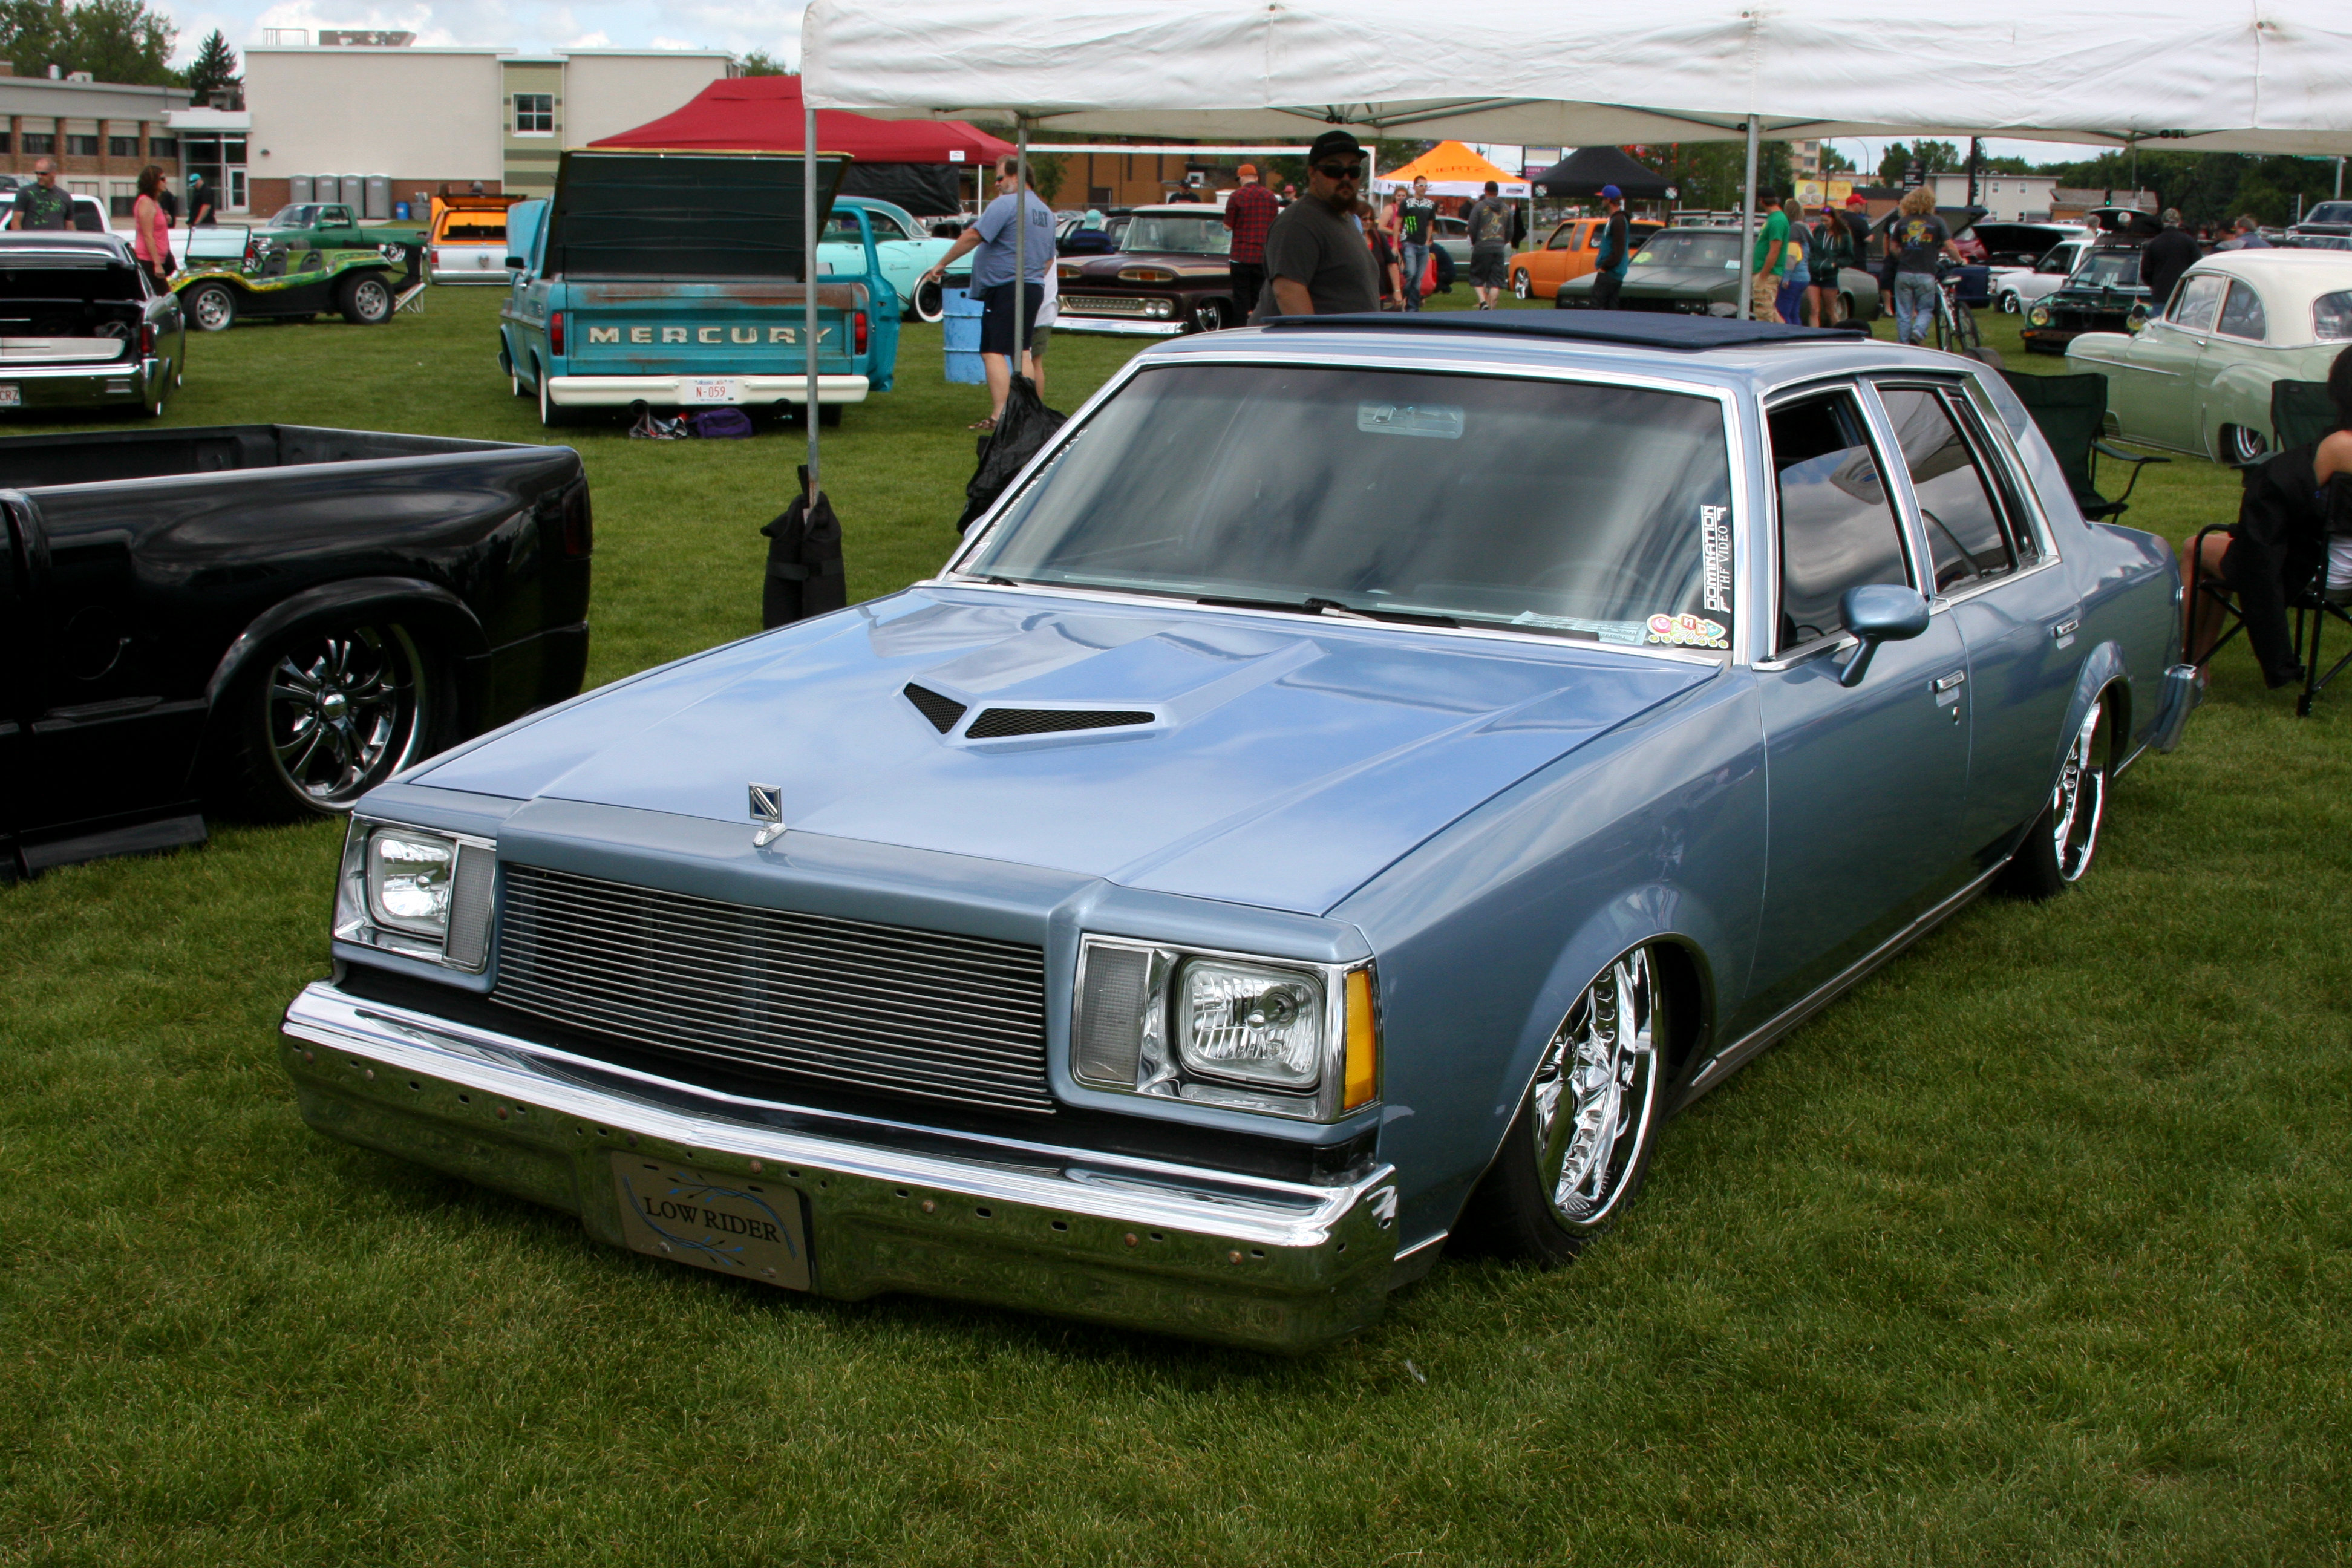 Marty Robbins further Watch also 1202 Lrmp Dan Drofenik 1980 Lincoln besides Buick Reatta further RFP 7888. on 1980 buick regal